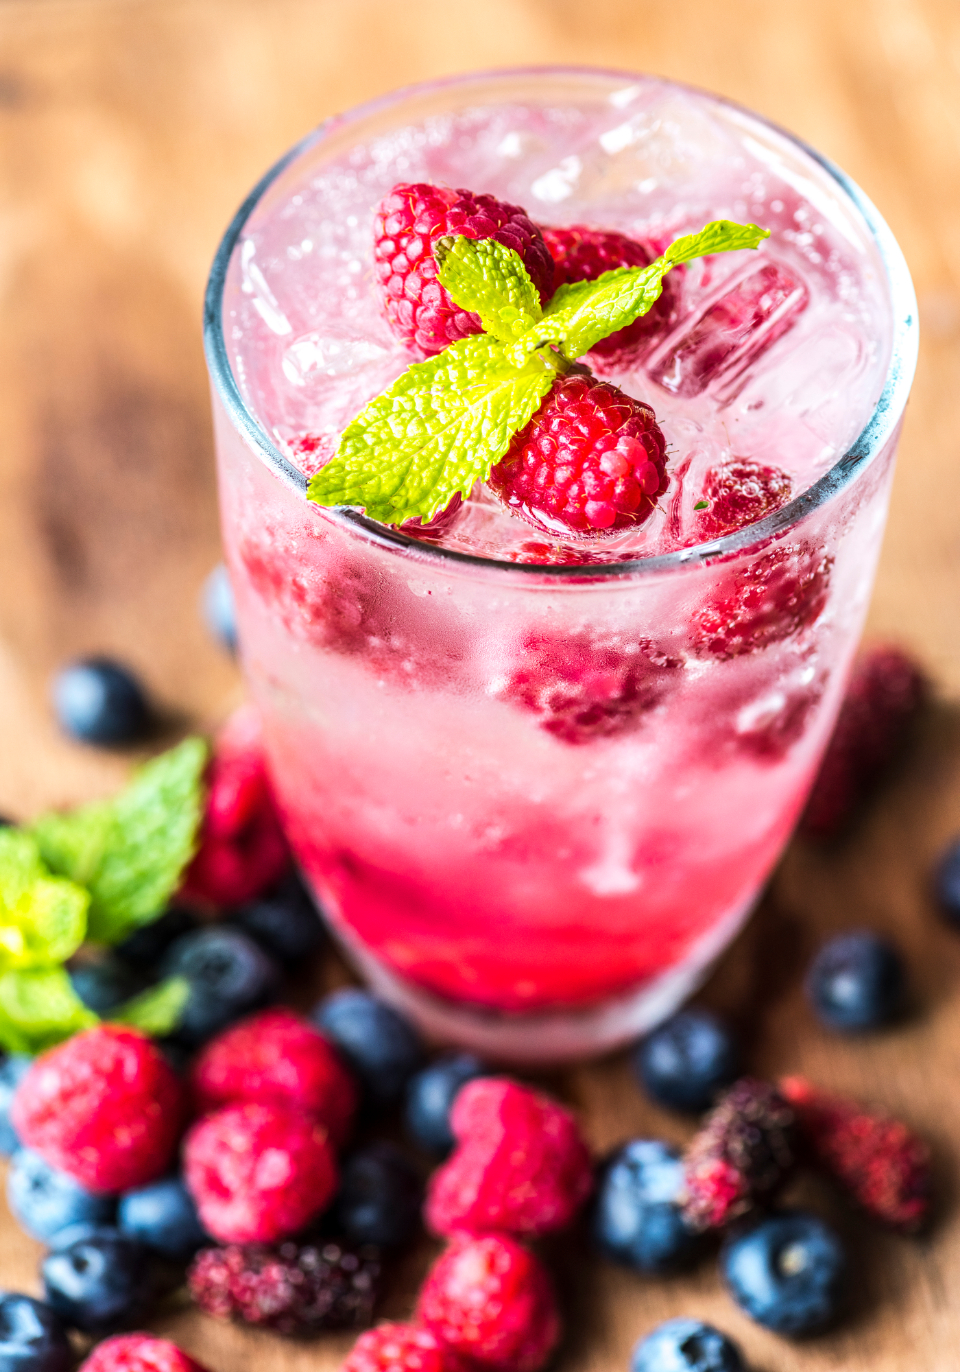 antioxidant beverage blueberry closeup cold water detox detox drink detox water drink flavored food photography fresh freshness fruit fruit flavored water fruit infused water glass healthcare healthy herb homemade hydrated infused water ingredients jui